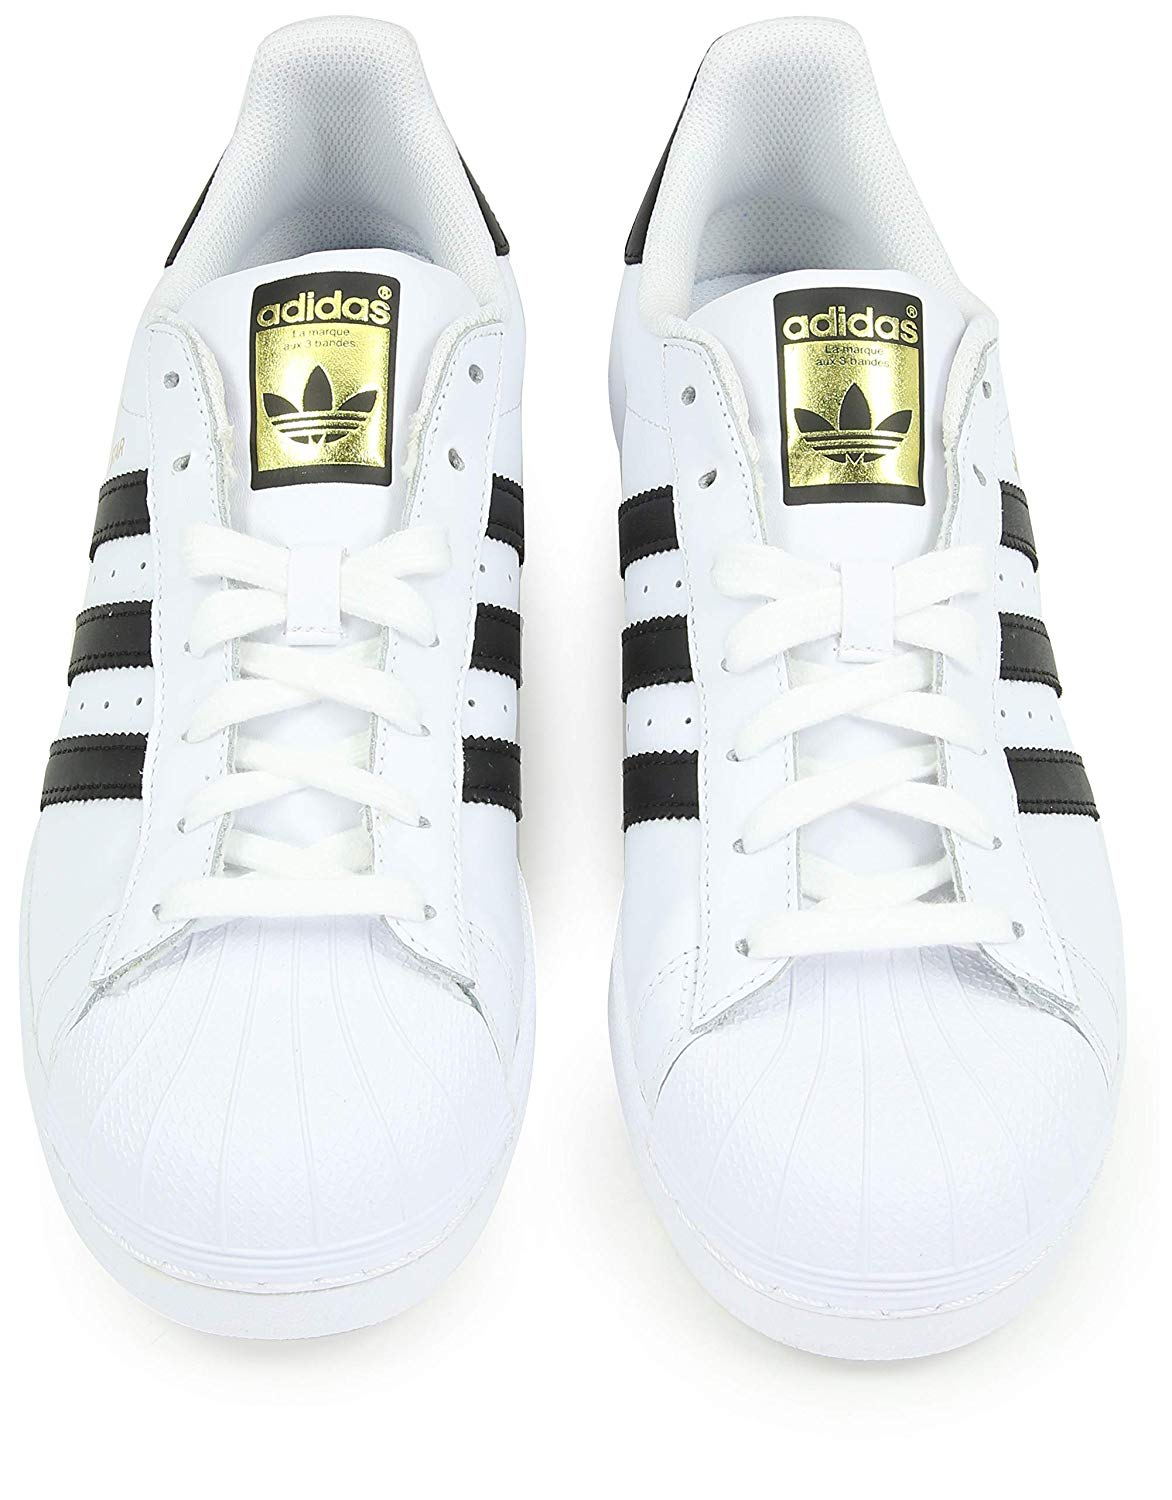 Up Adidas Blackwhite Whitecore Mens Size 10 Leather Lace Top 0 Superstar Low DIHW2Y9E